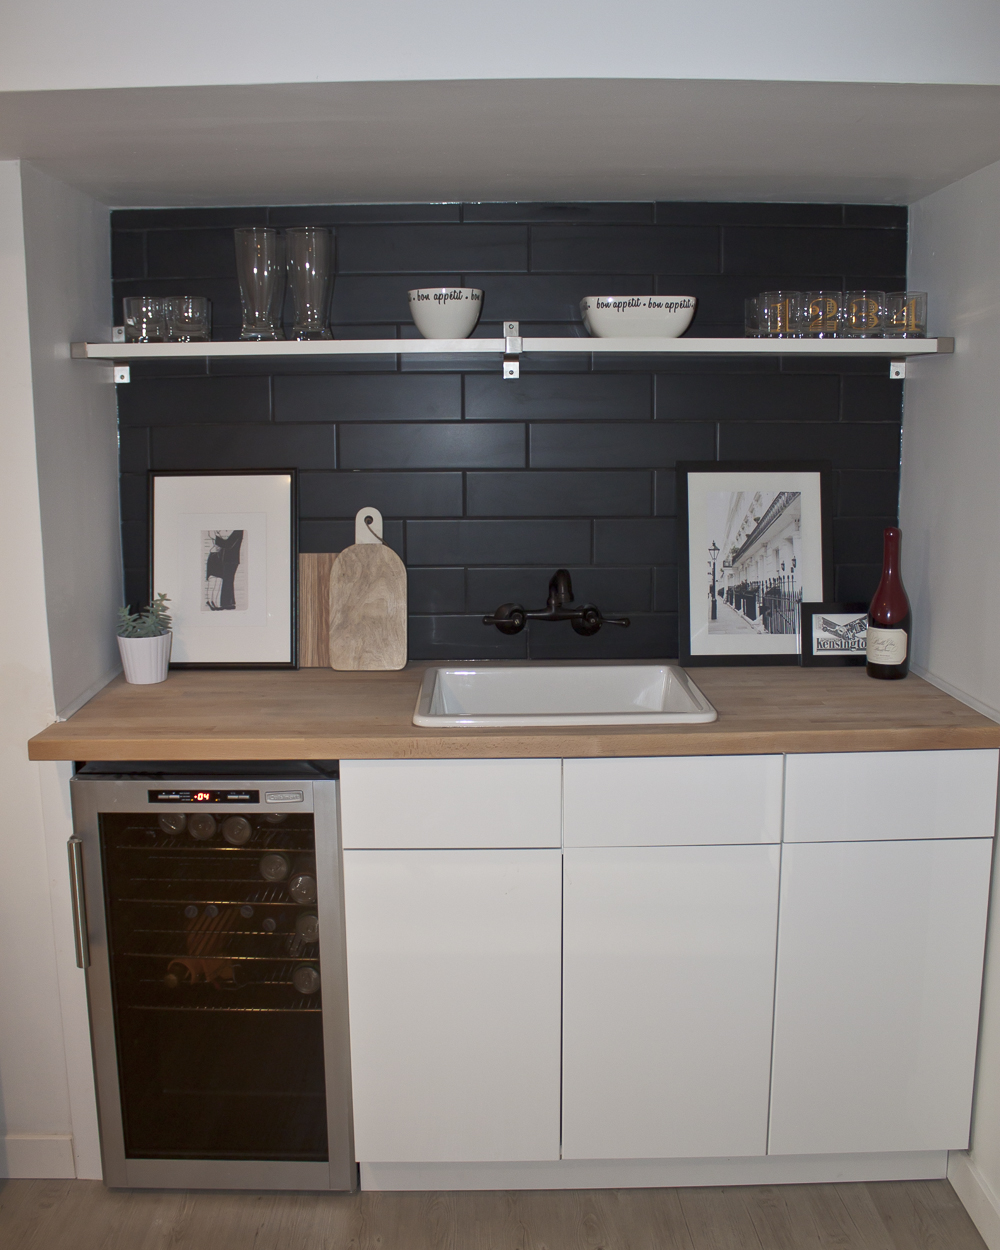 Designer Basements: Our Home Renovation: The New And Improved Basement Design